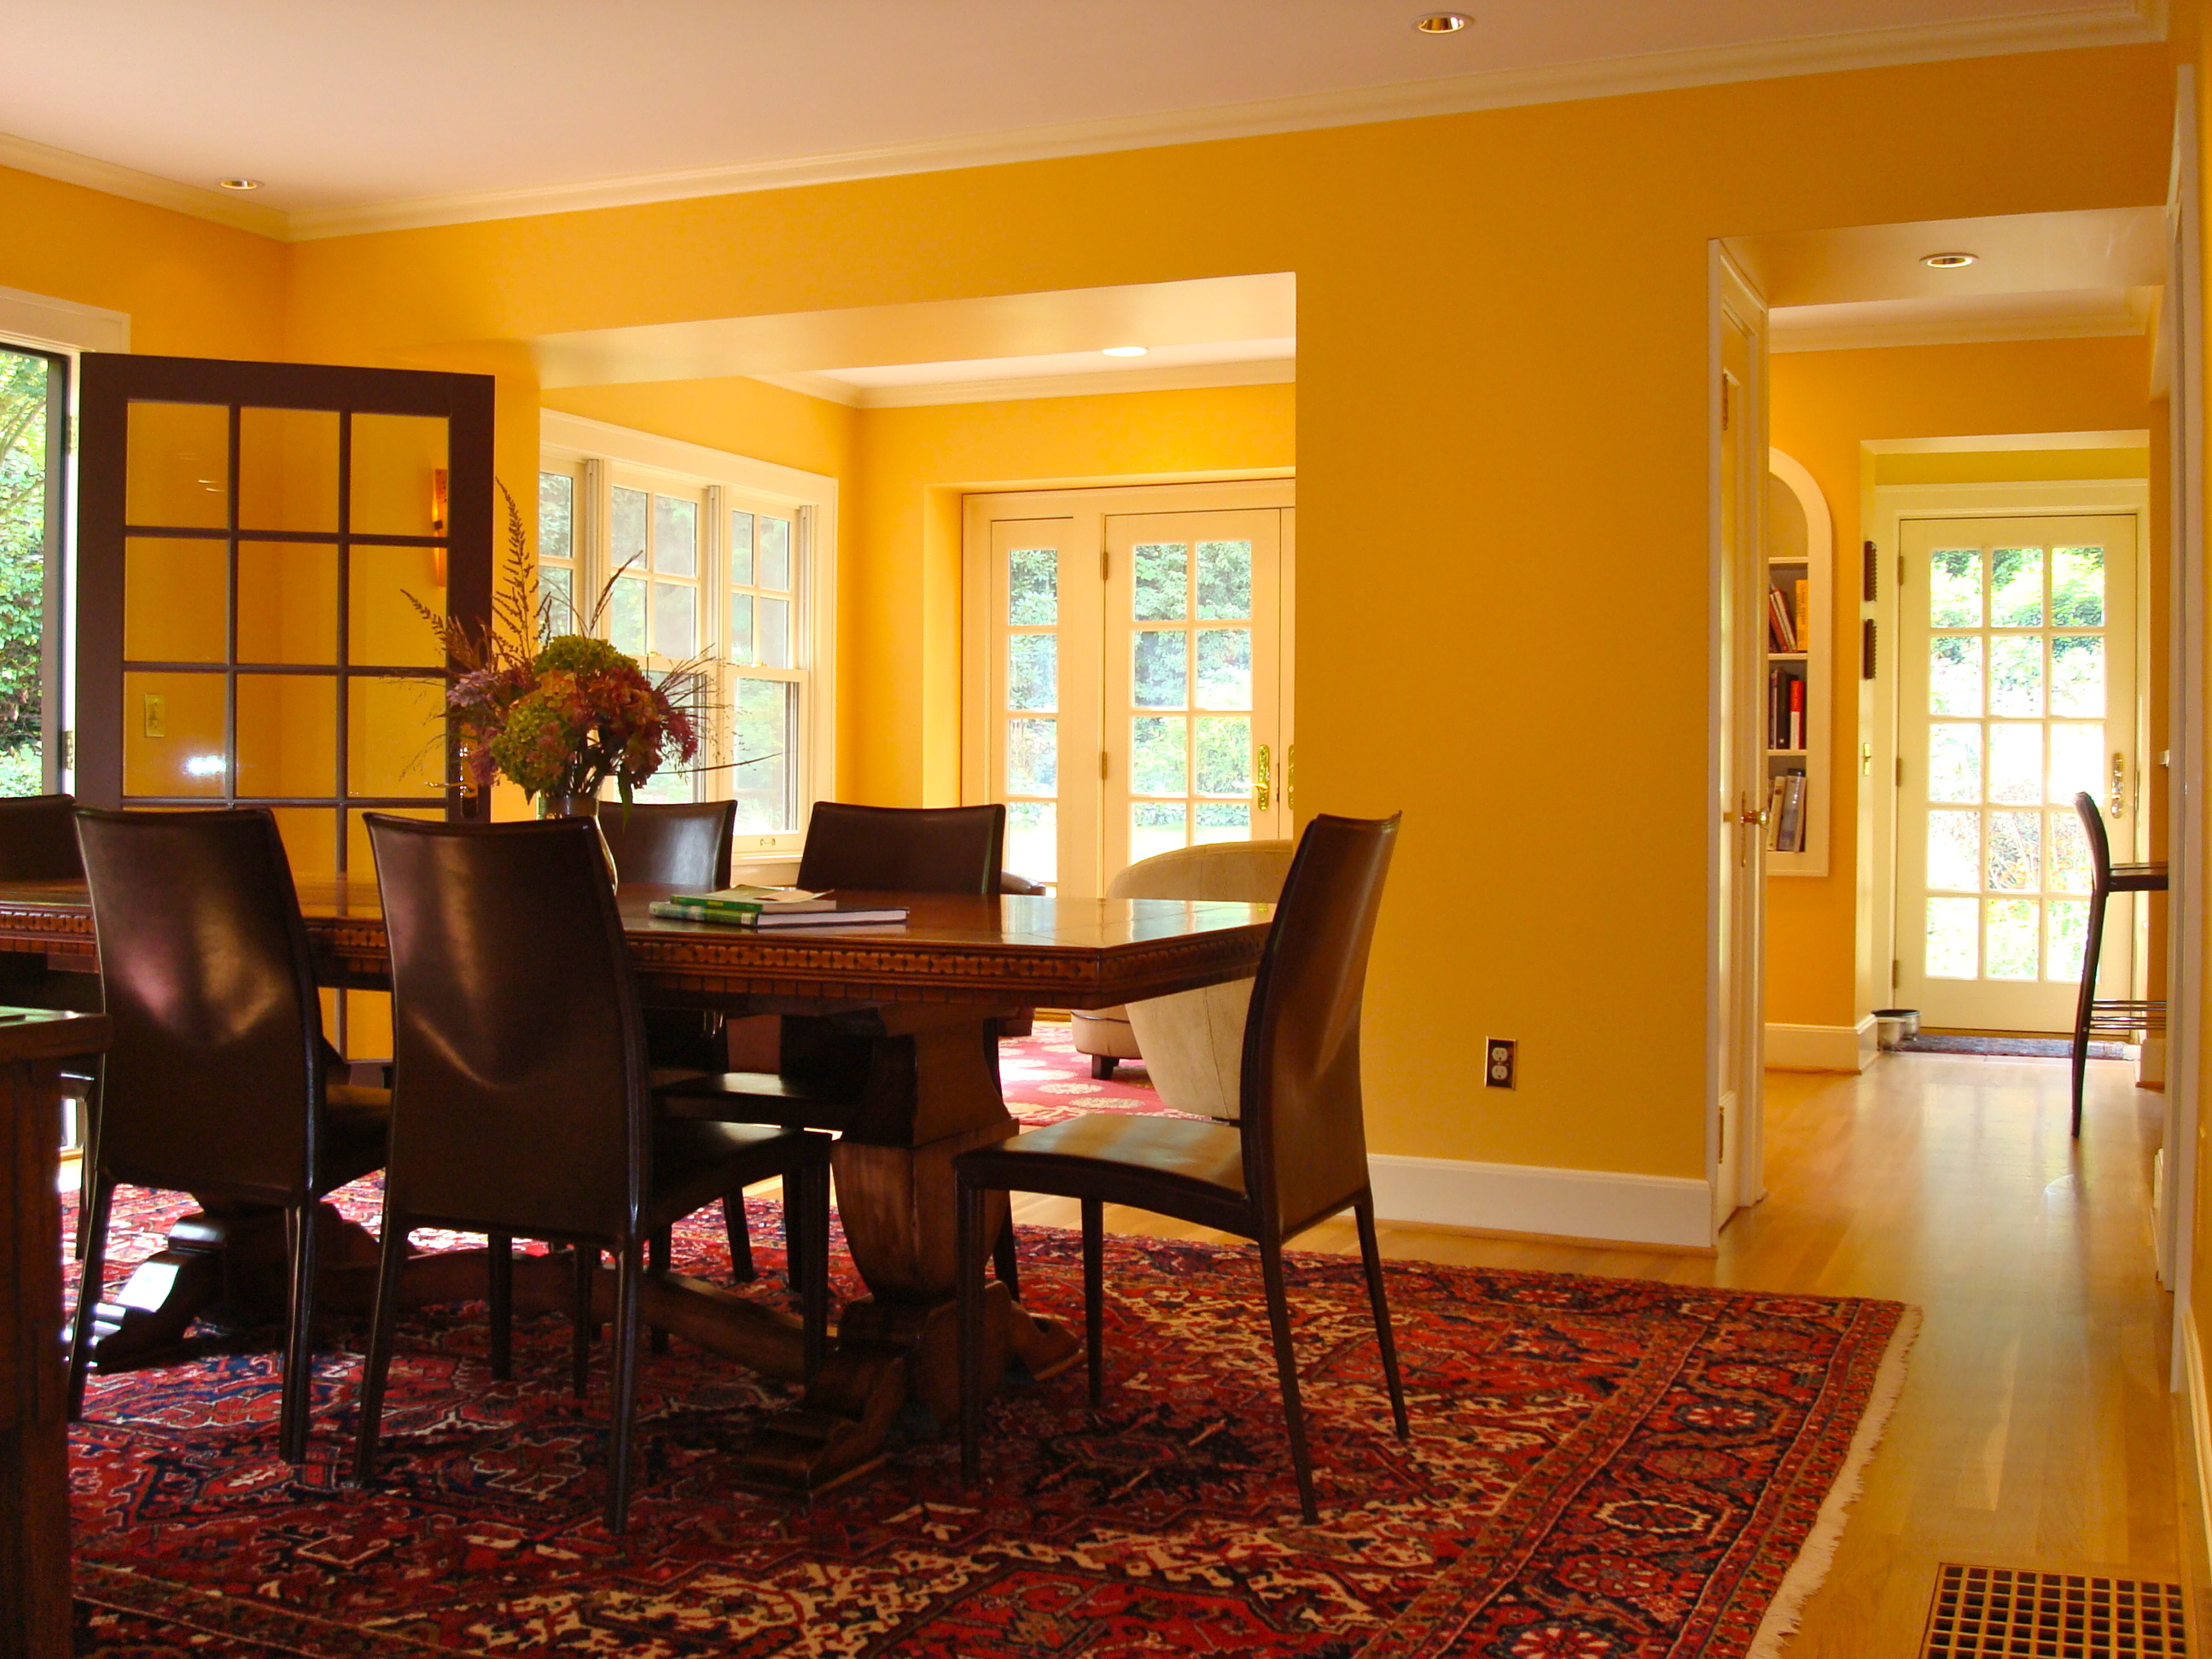 South Barrington Dining Room Project: 1930s Dining Room And Library Remodel